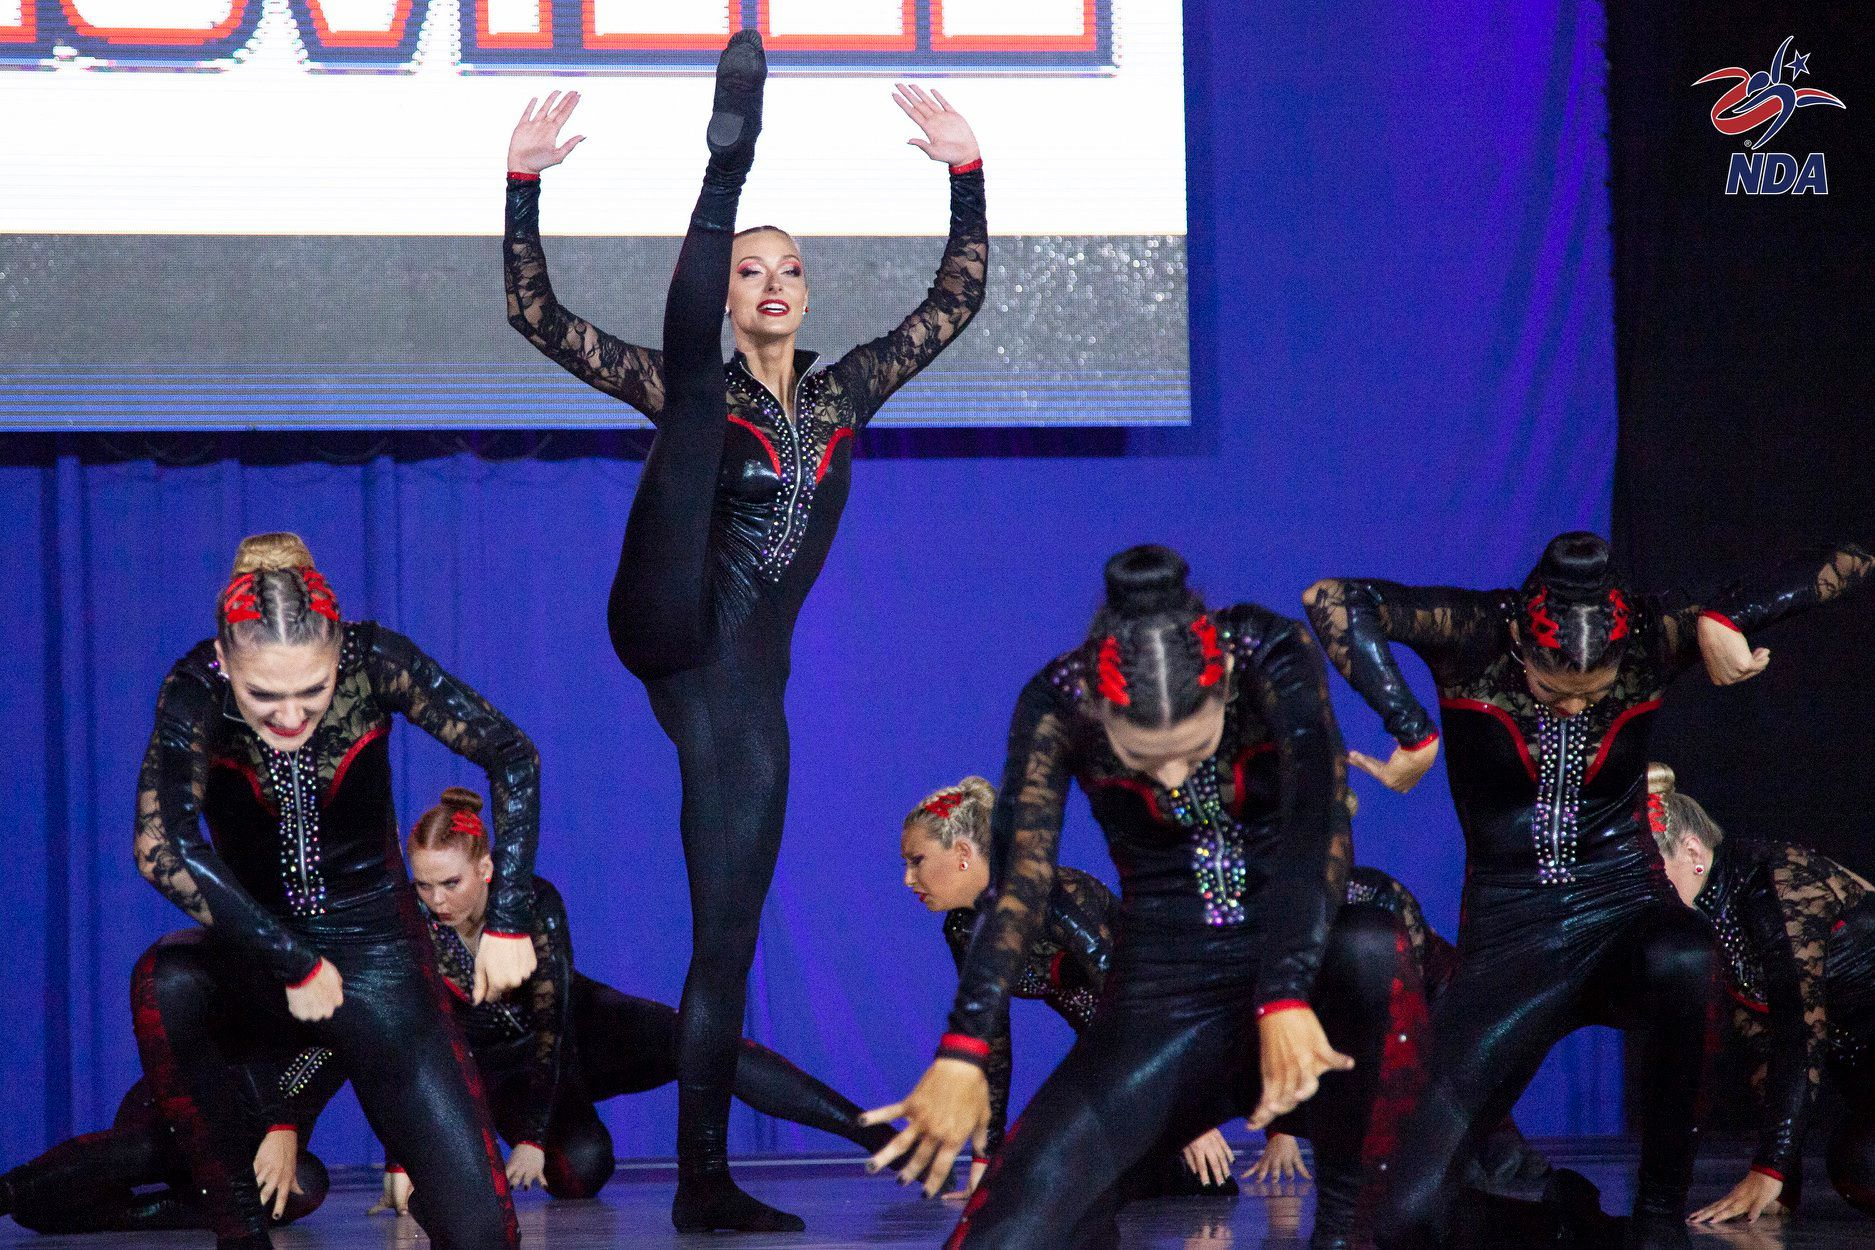 Louisville Ladybirds team dance costume at NDA Nationals